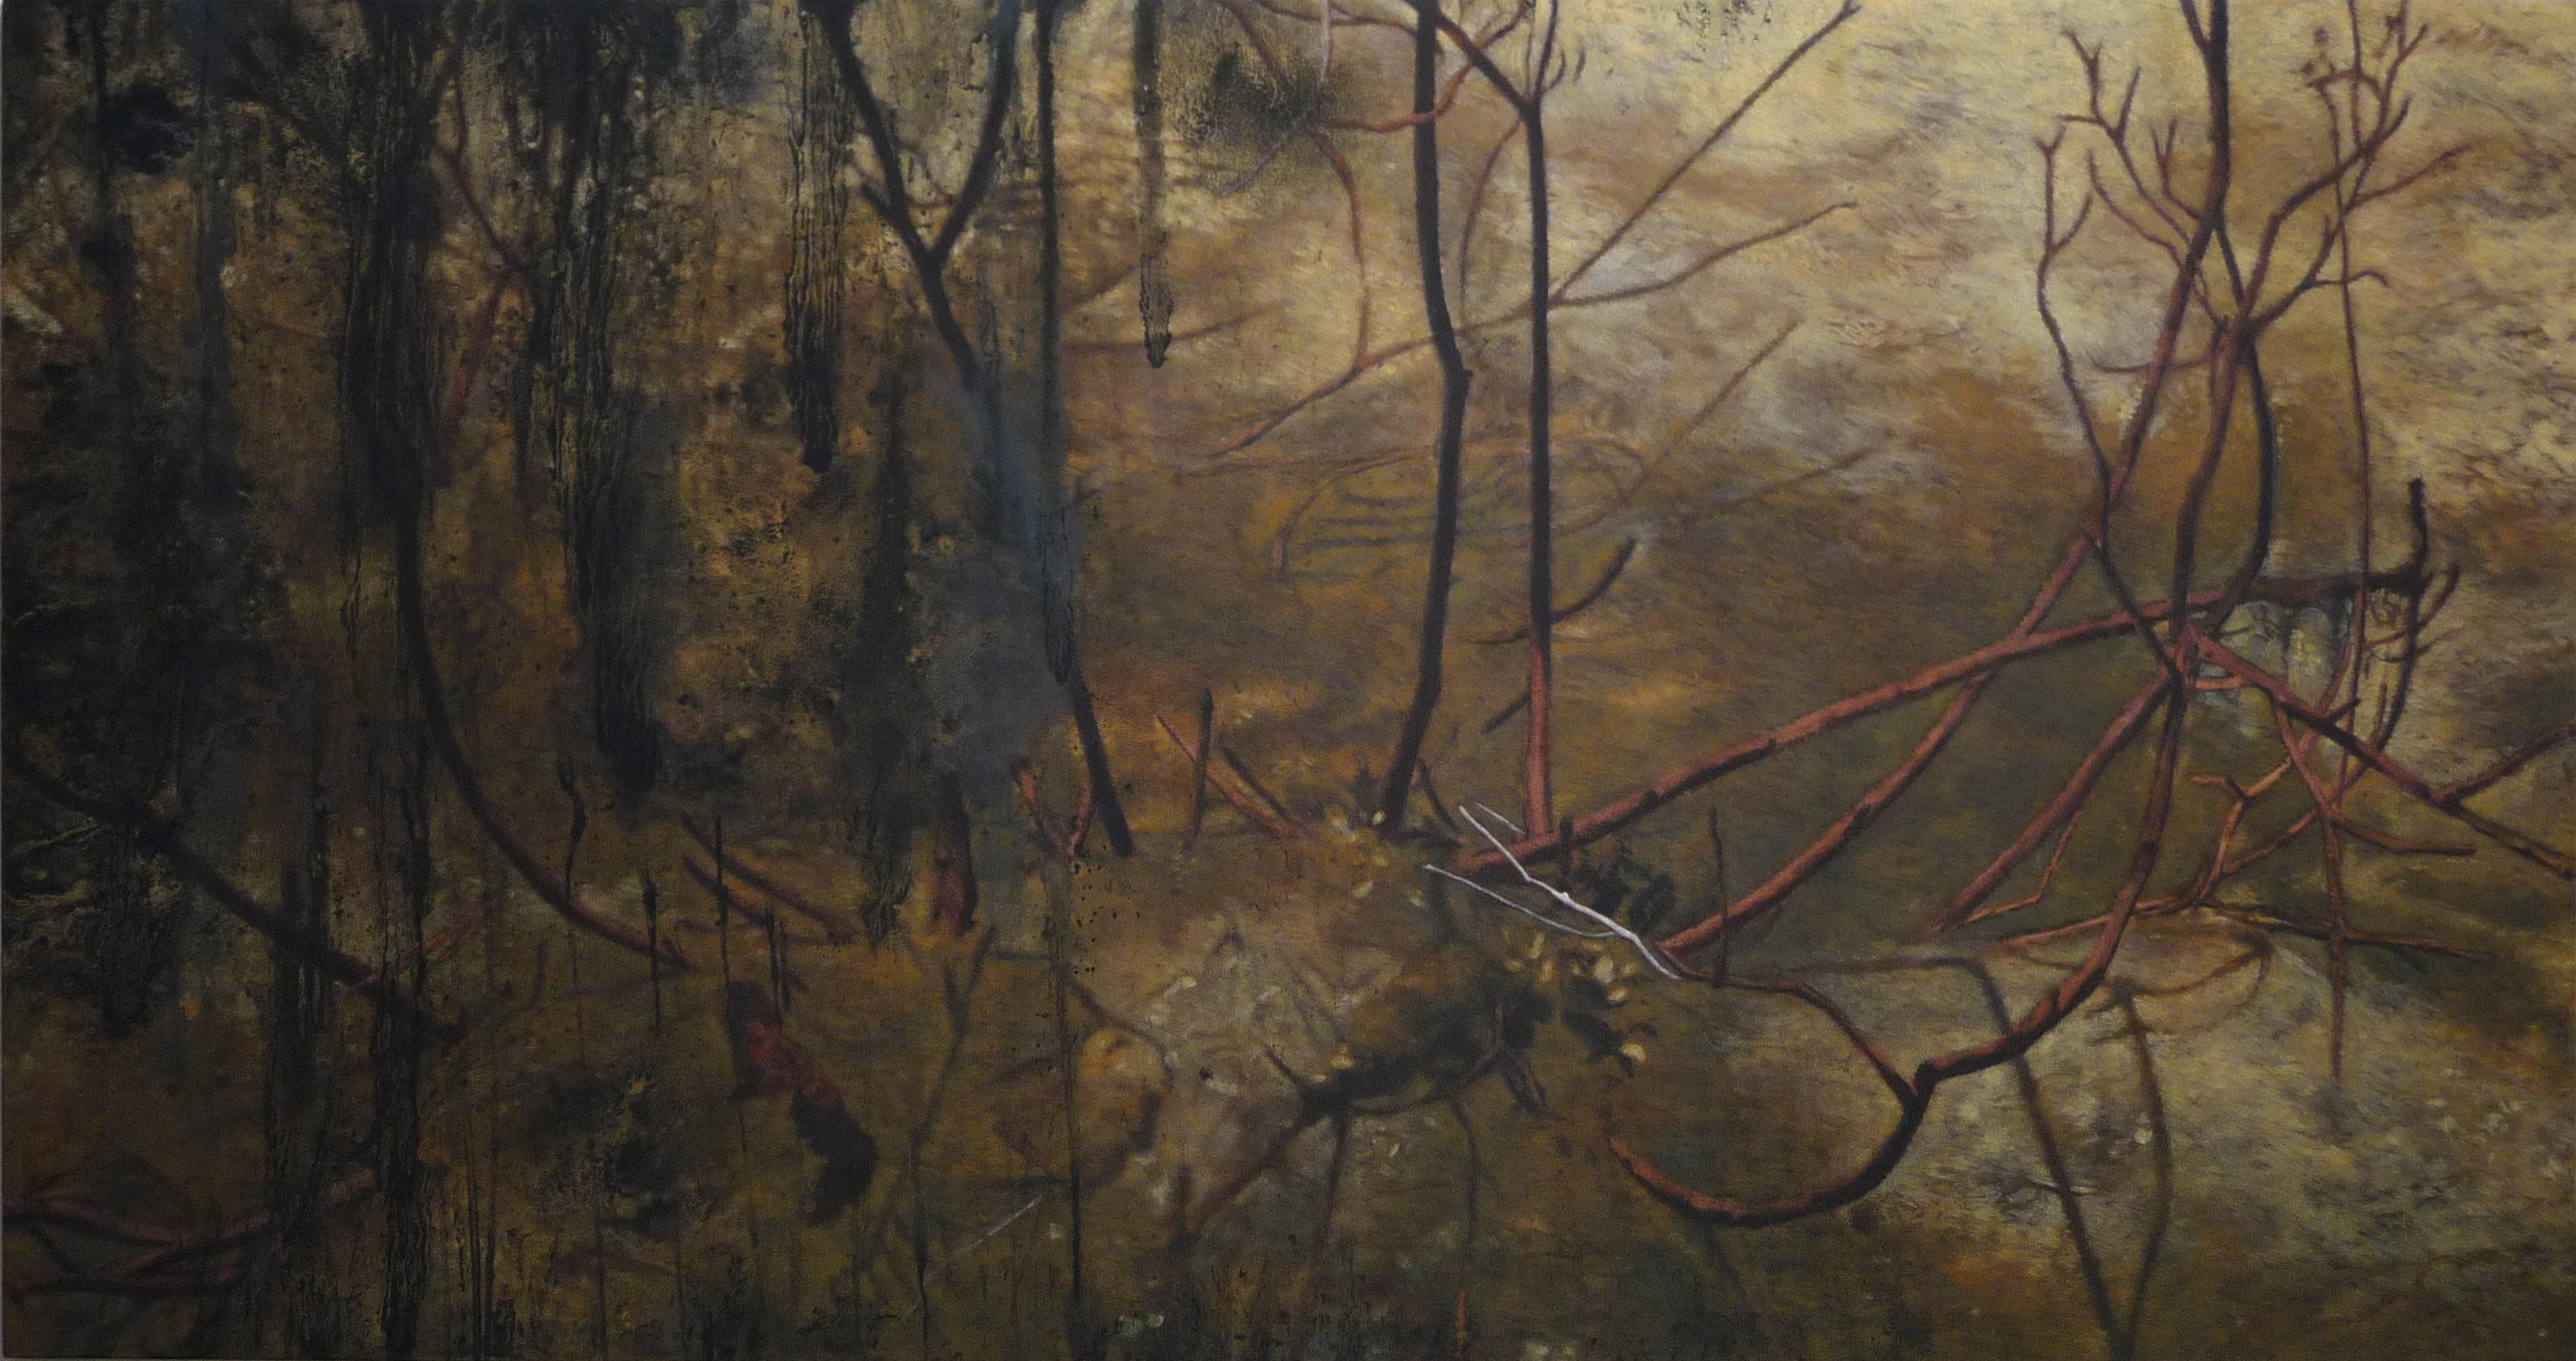 <p><strong>After Fire                             2475 Euro</strong><br />Punic wax on canvas       190x100 cm